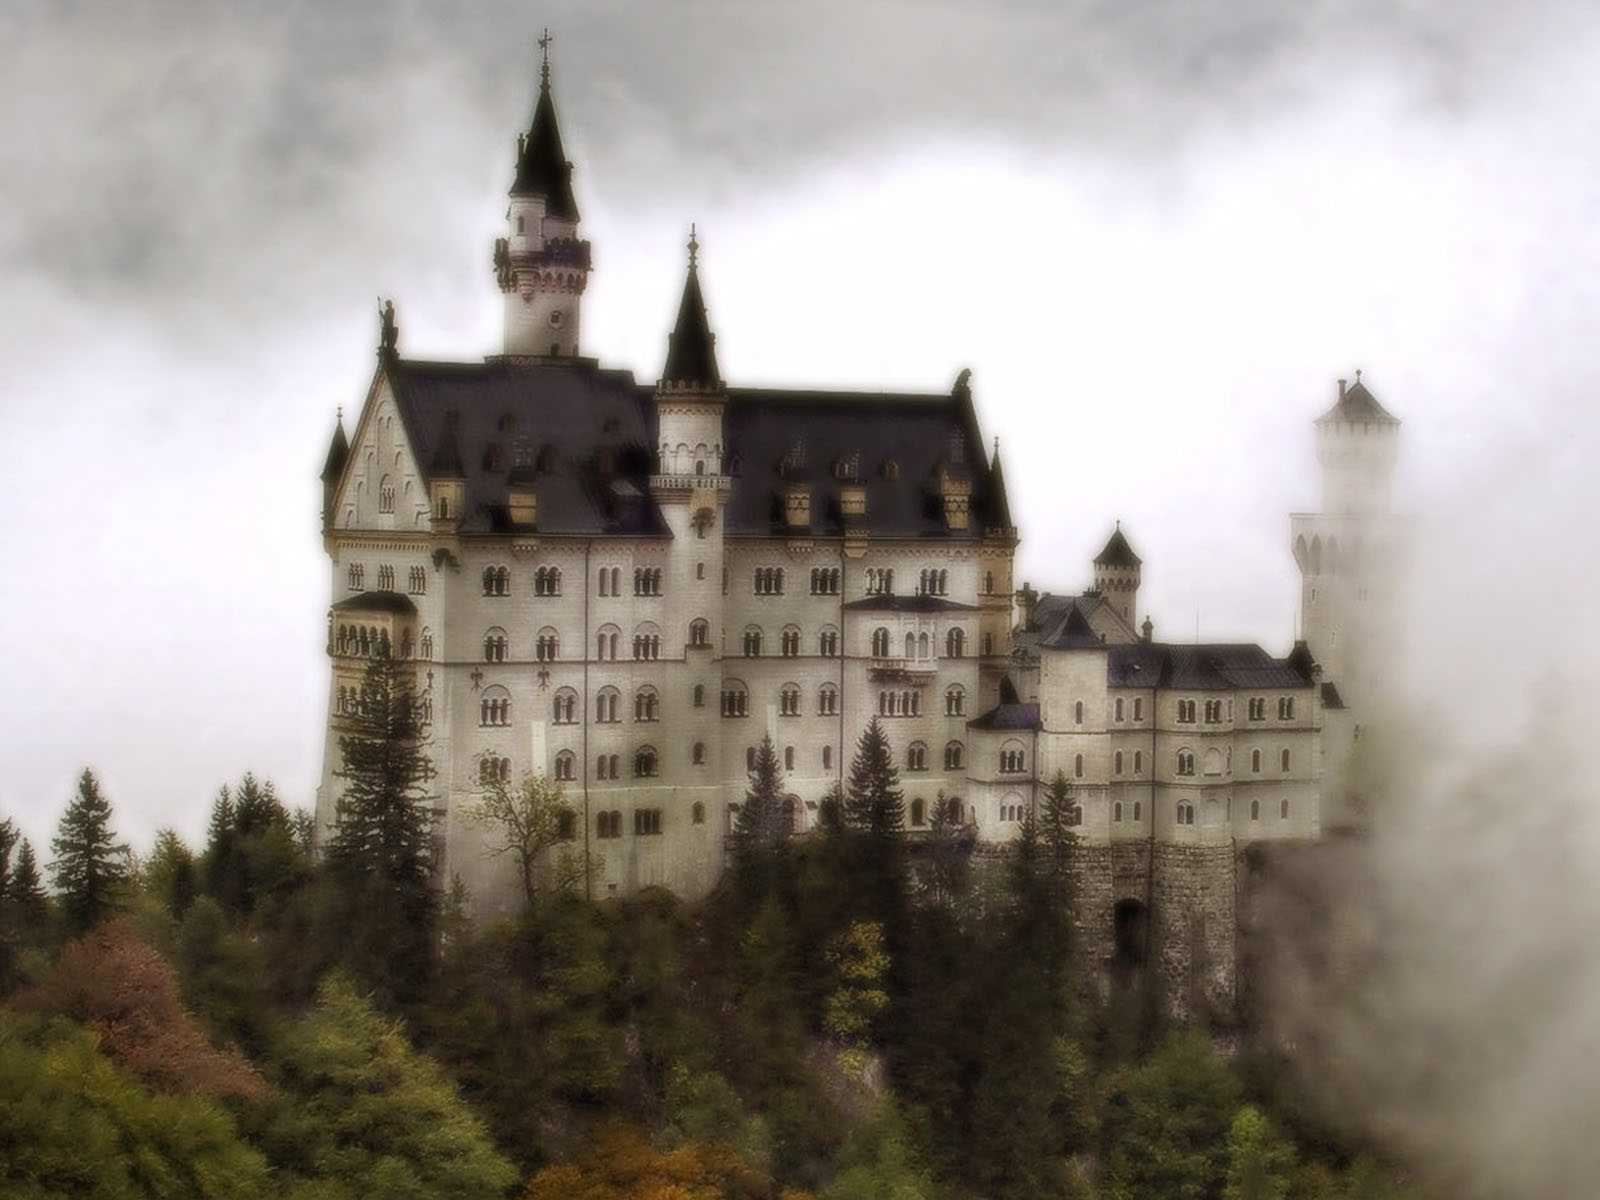 Castle Screensaver 10 Find Yourself In A Mysterious And Scary Place 1600x1200